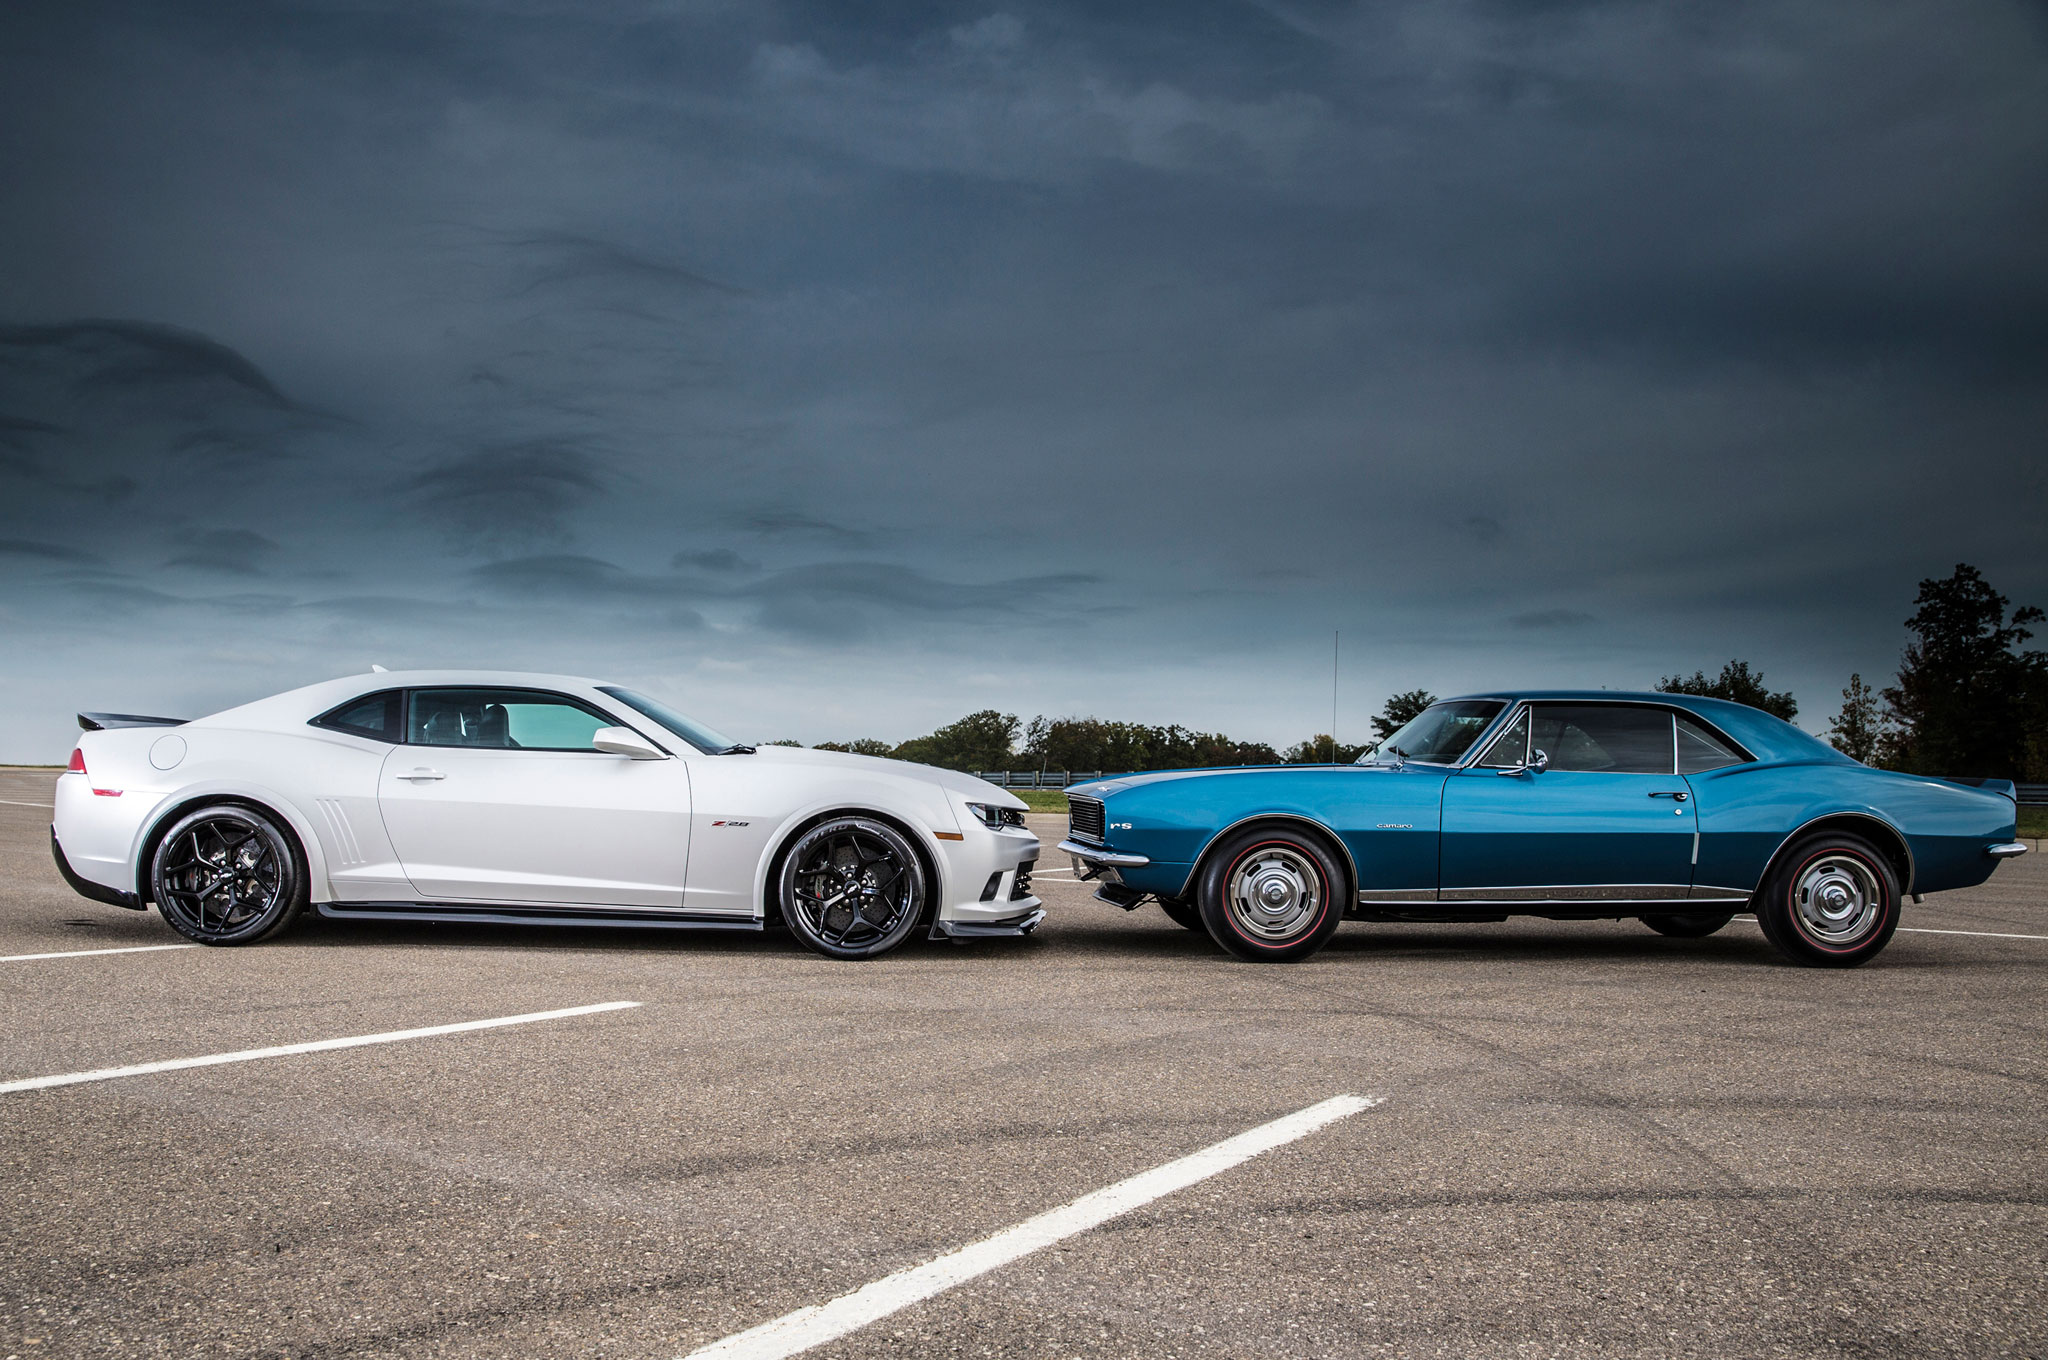 Head to Head - 2014 and 1967 Chevrolet Camaro Z/28